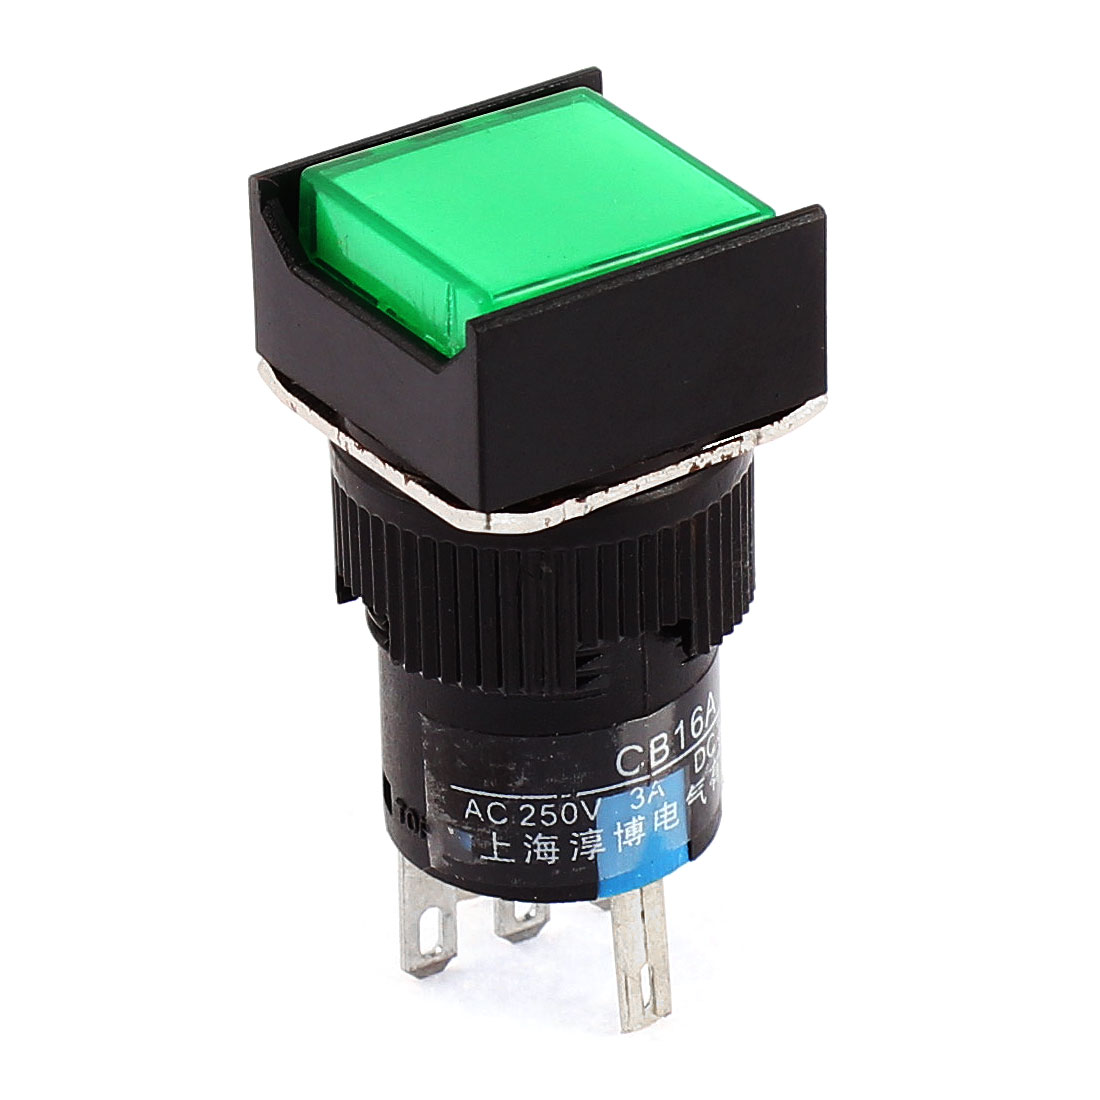 AC 220V Green Pilot Light 16mm Thread Panel Mounted SPDT 1NO 1NC Momentary Square Push Button Switch